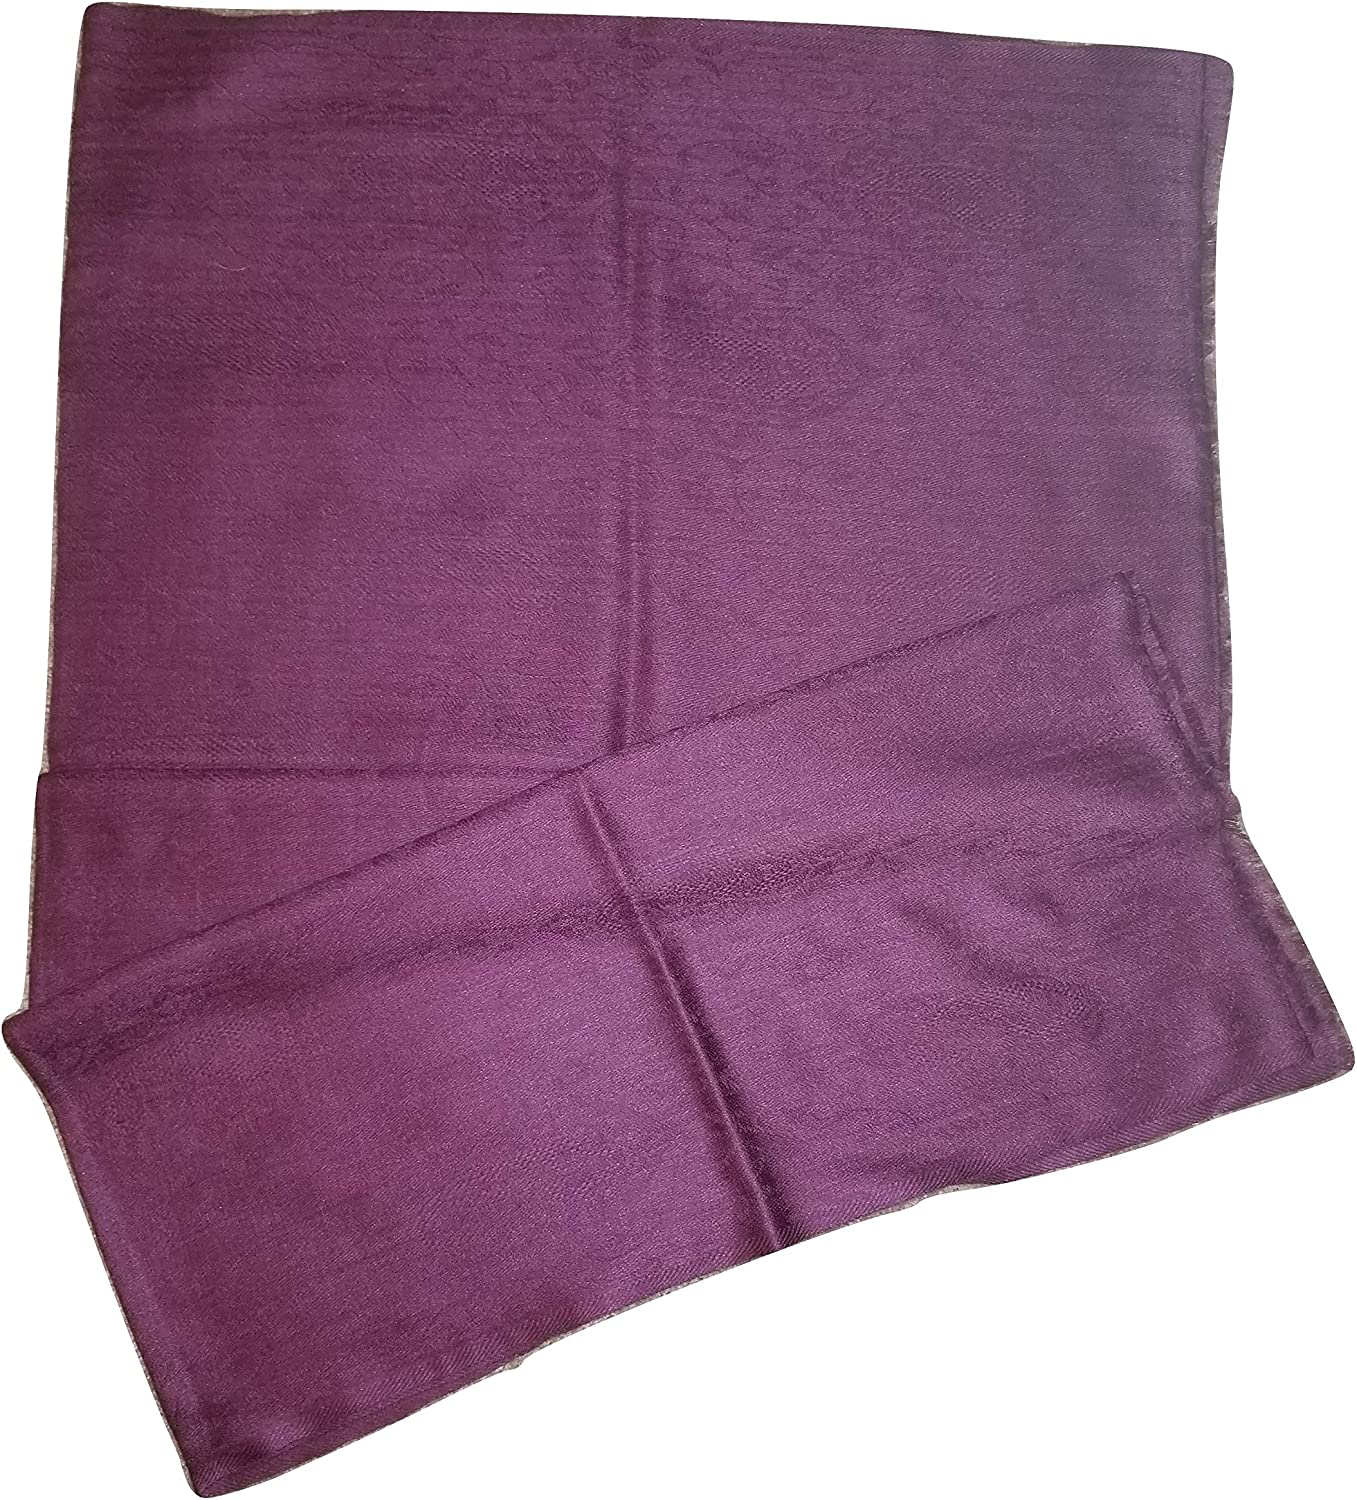 PASHMINA STOLE AND WRAPS (BRIGHT PINK)